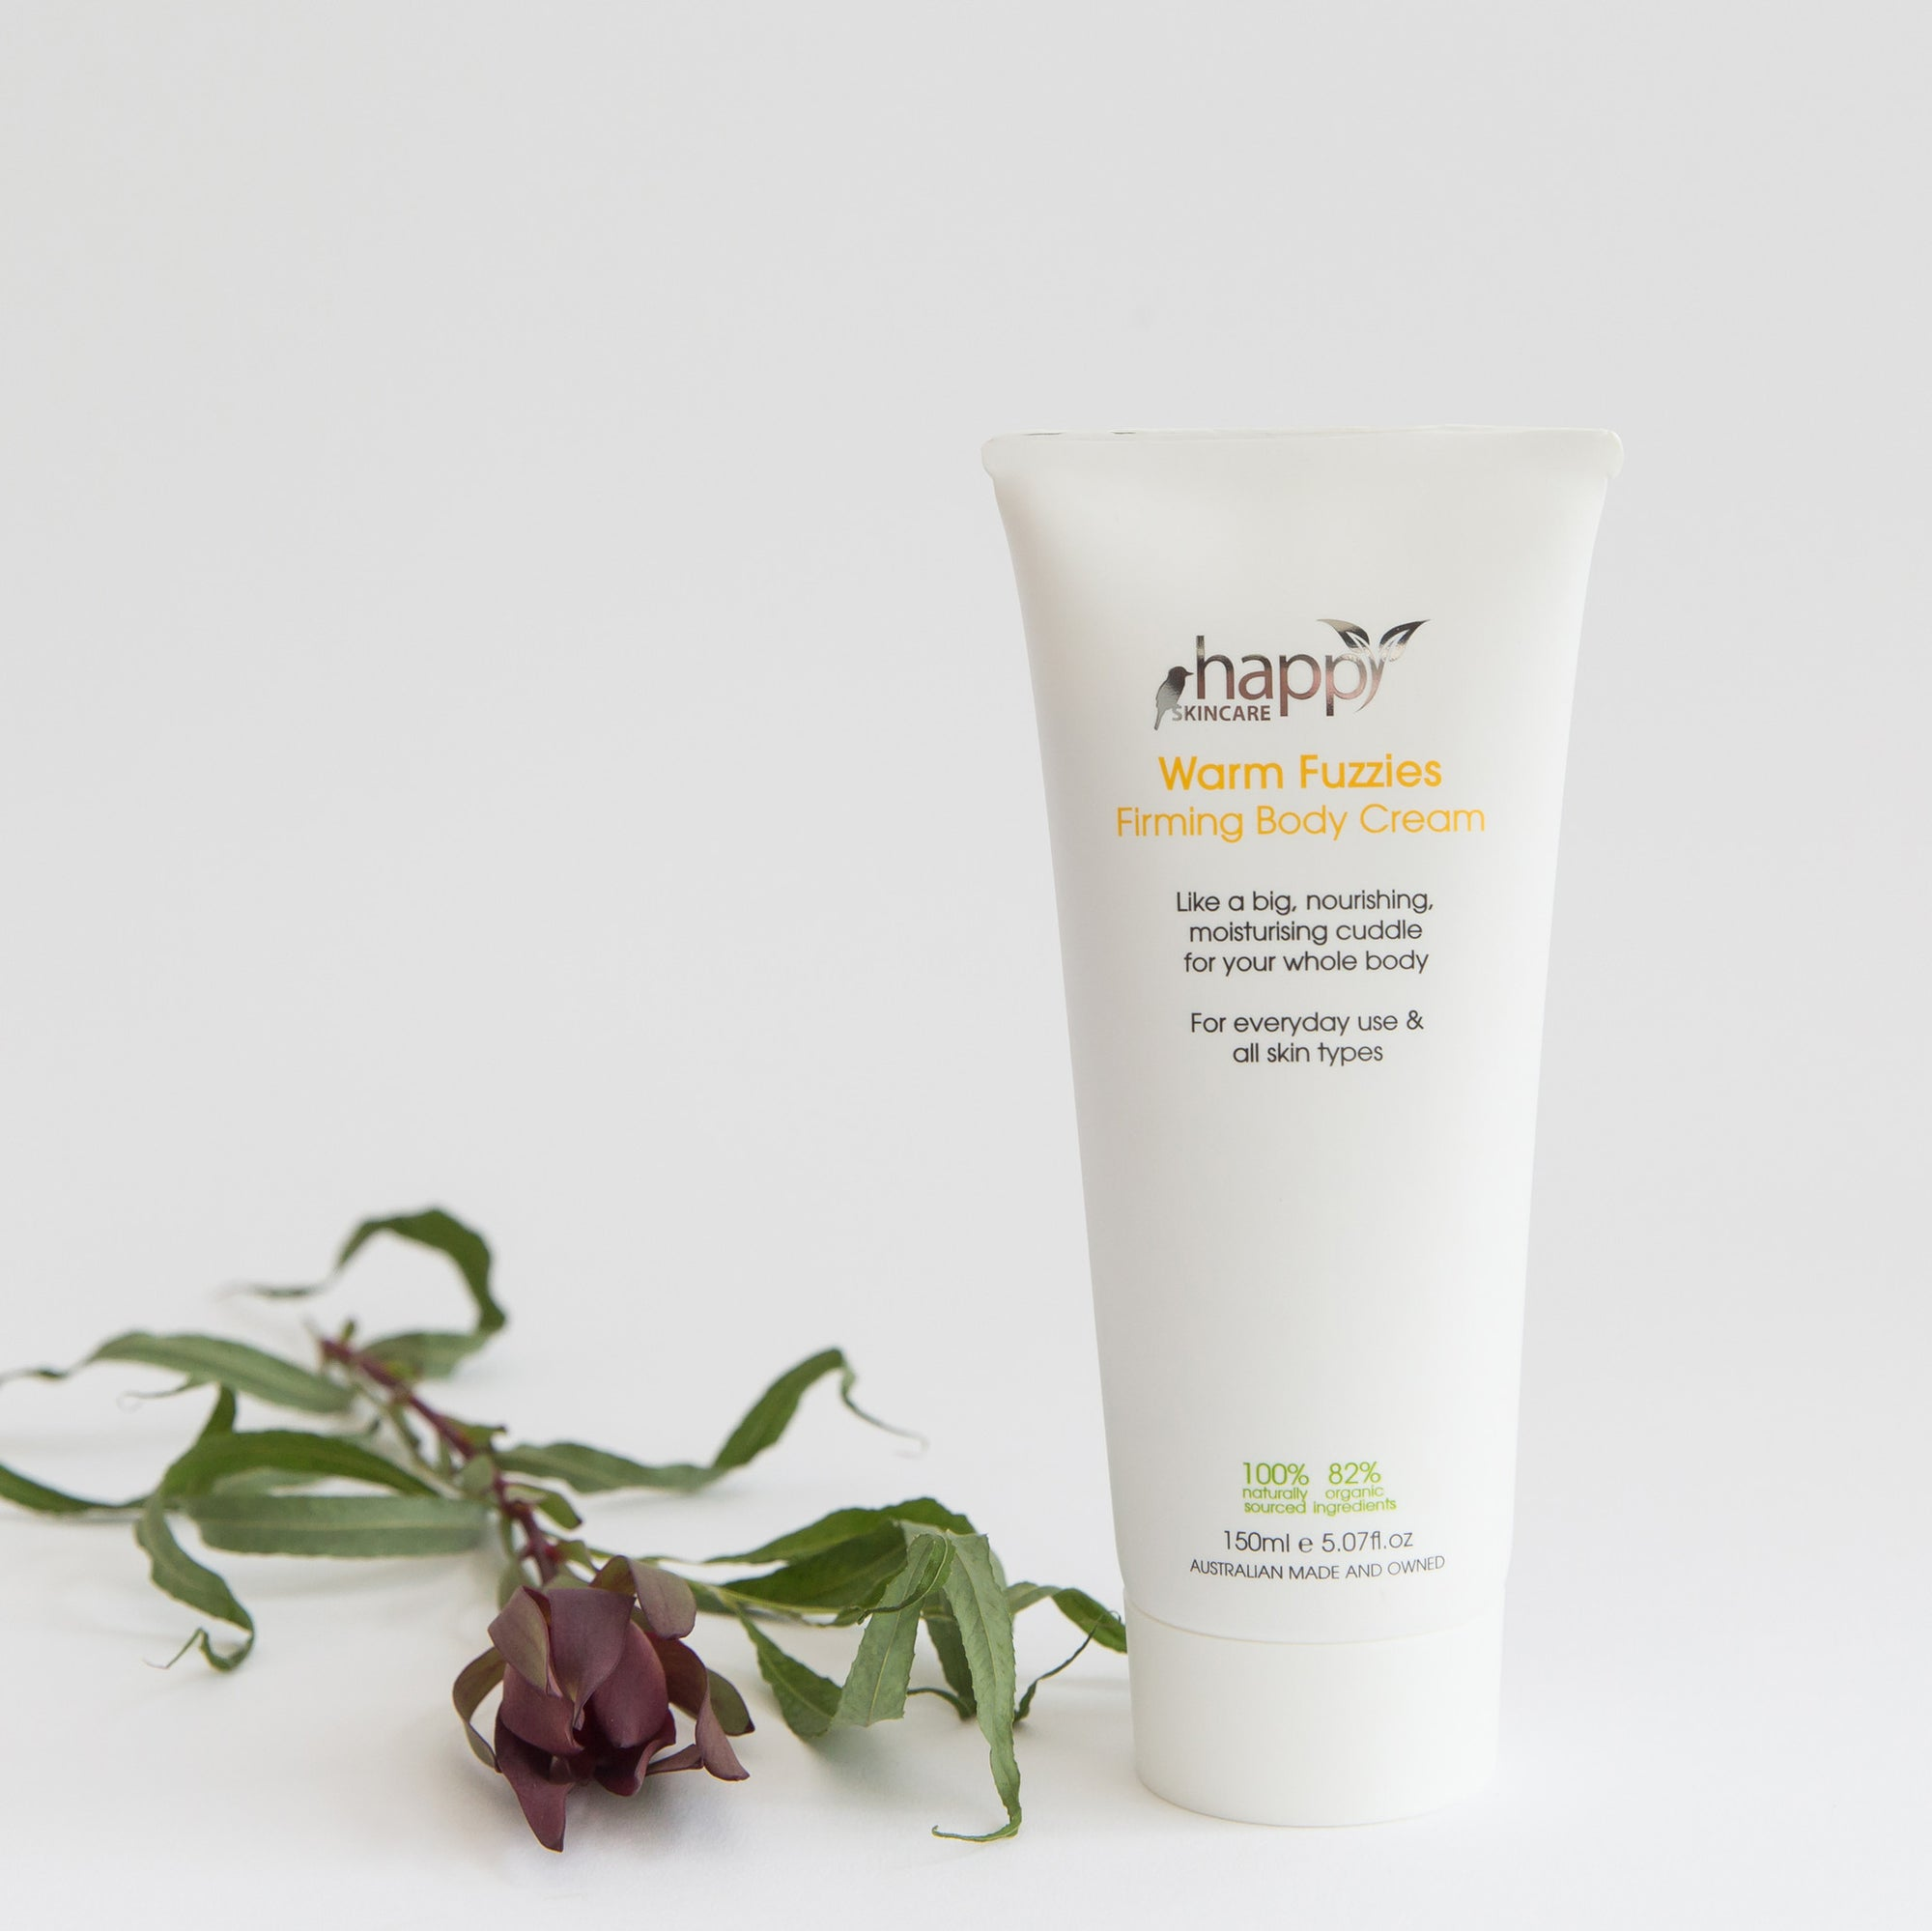 'Warm Fuzzies' Nourishing Body Cream